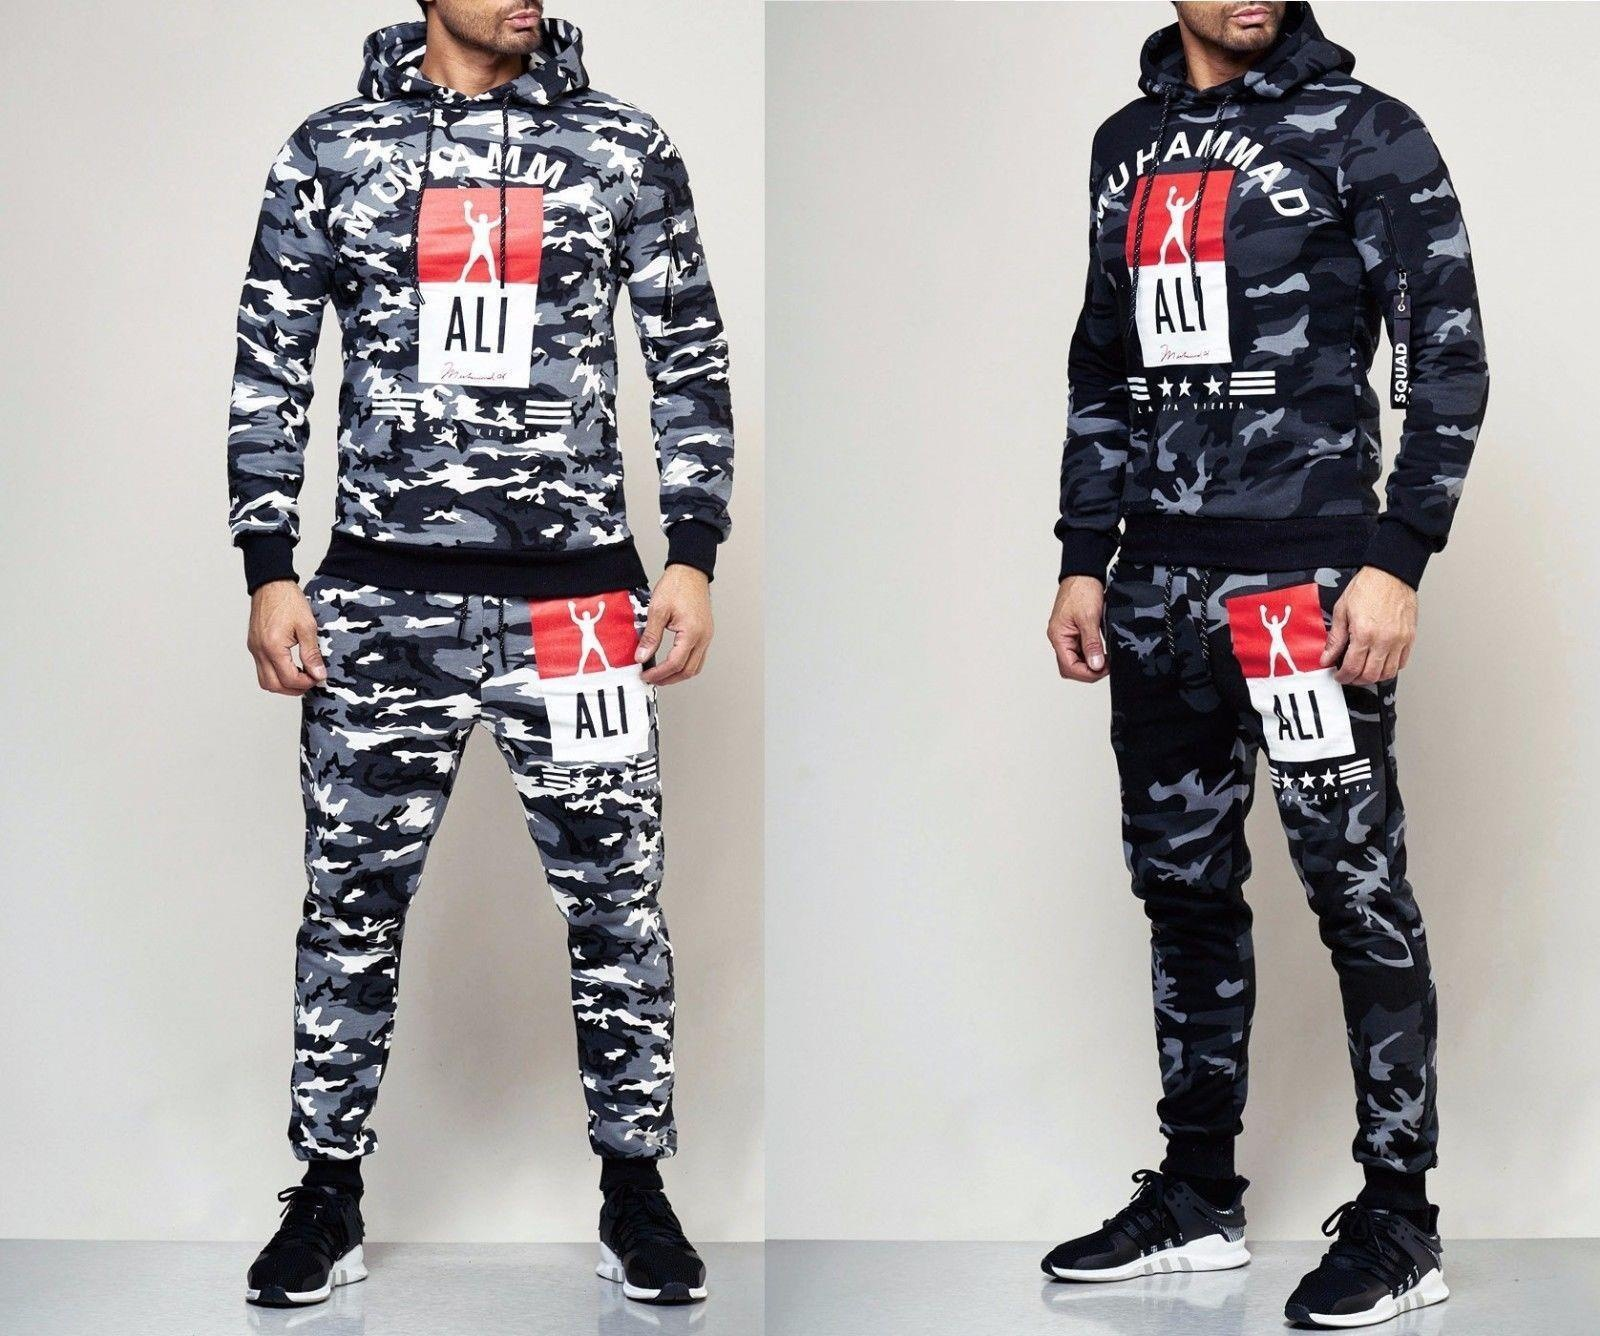 2018 New Style/AliExpress Europe And America MEN'S Suit Champion Printed Hoodie Sweatpants Sports Set